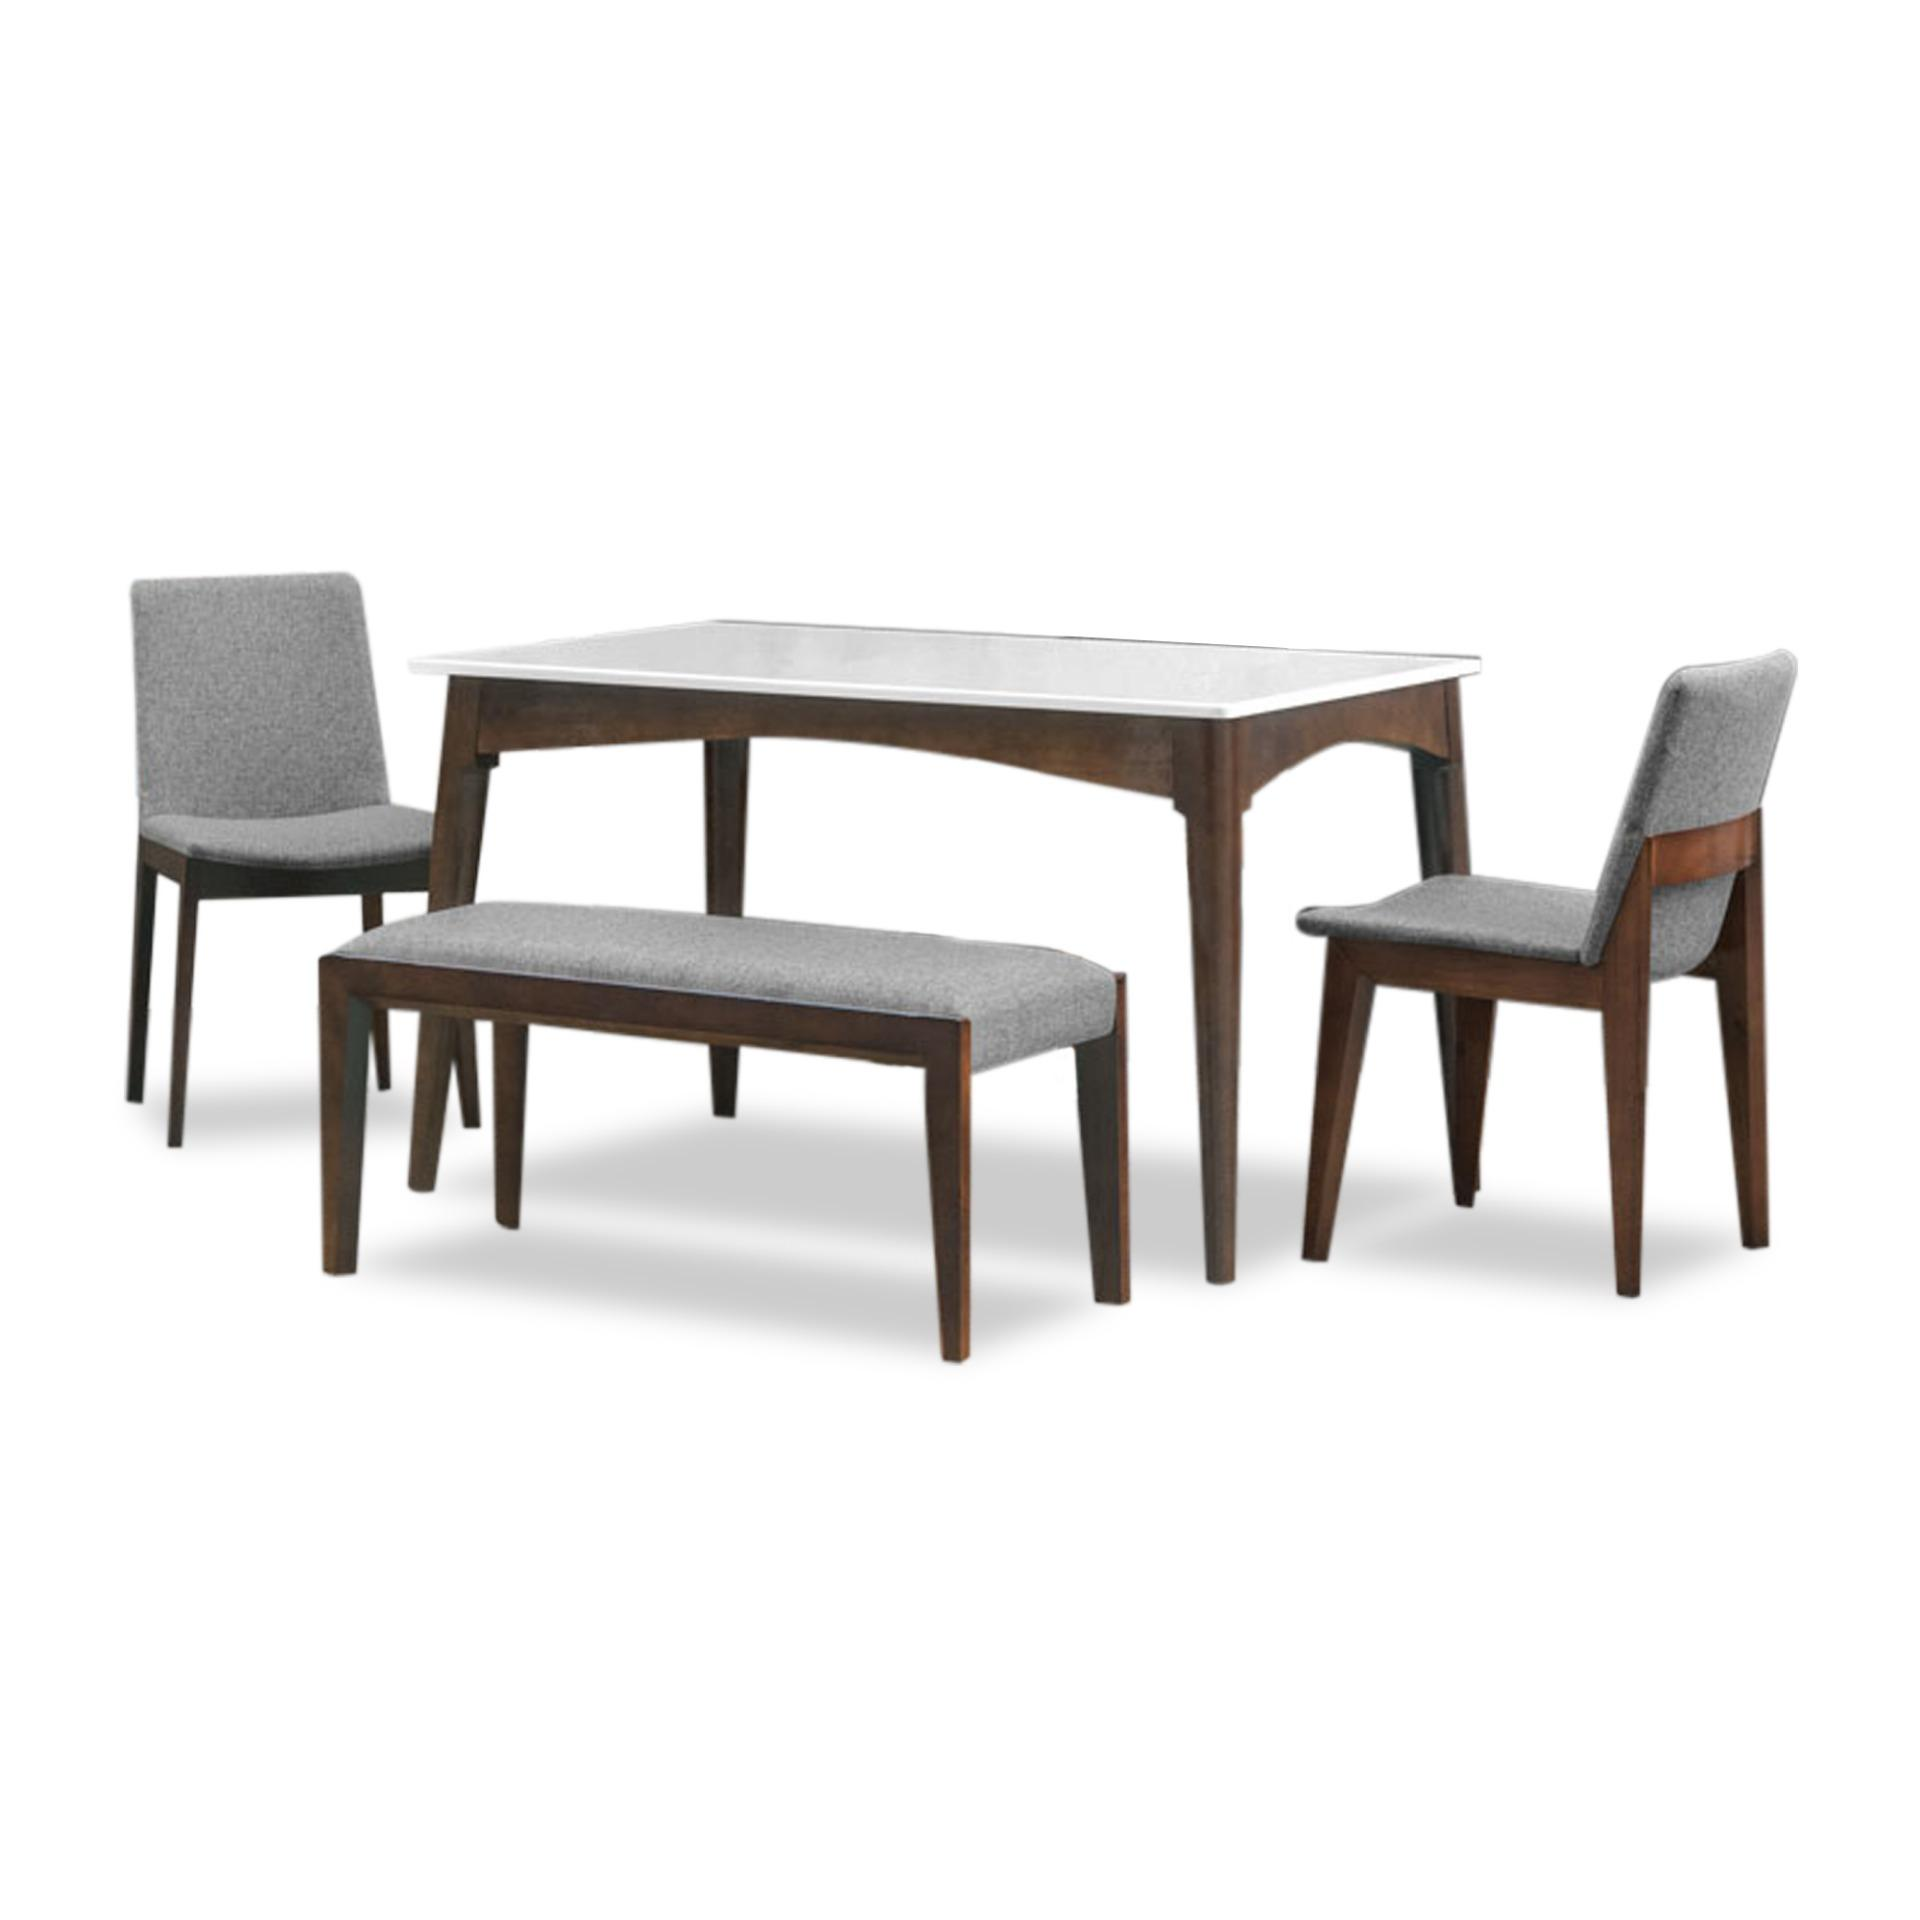 Buy Top Kitchen Dining Furniture Lazadasg - Cheap kitchen table and chairs for sale